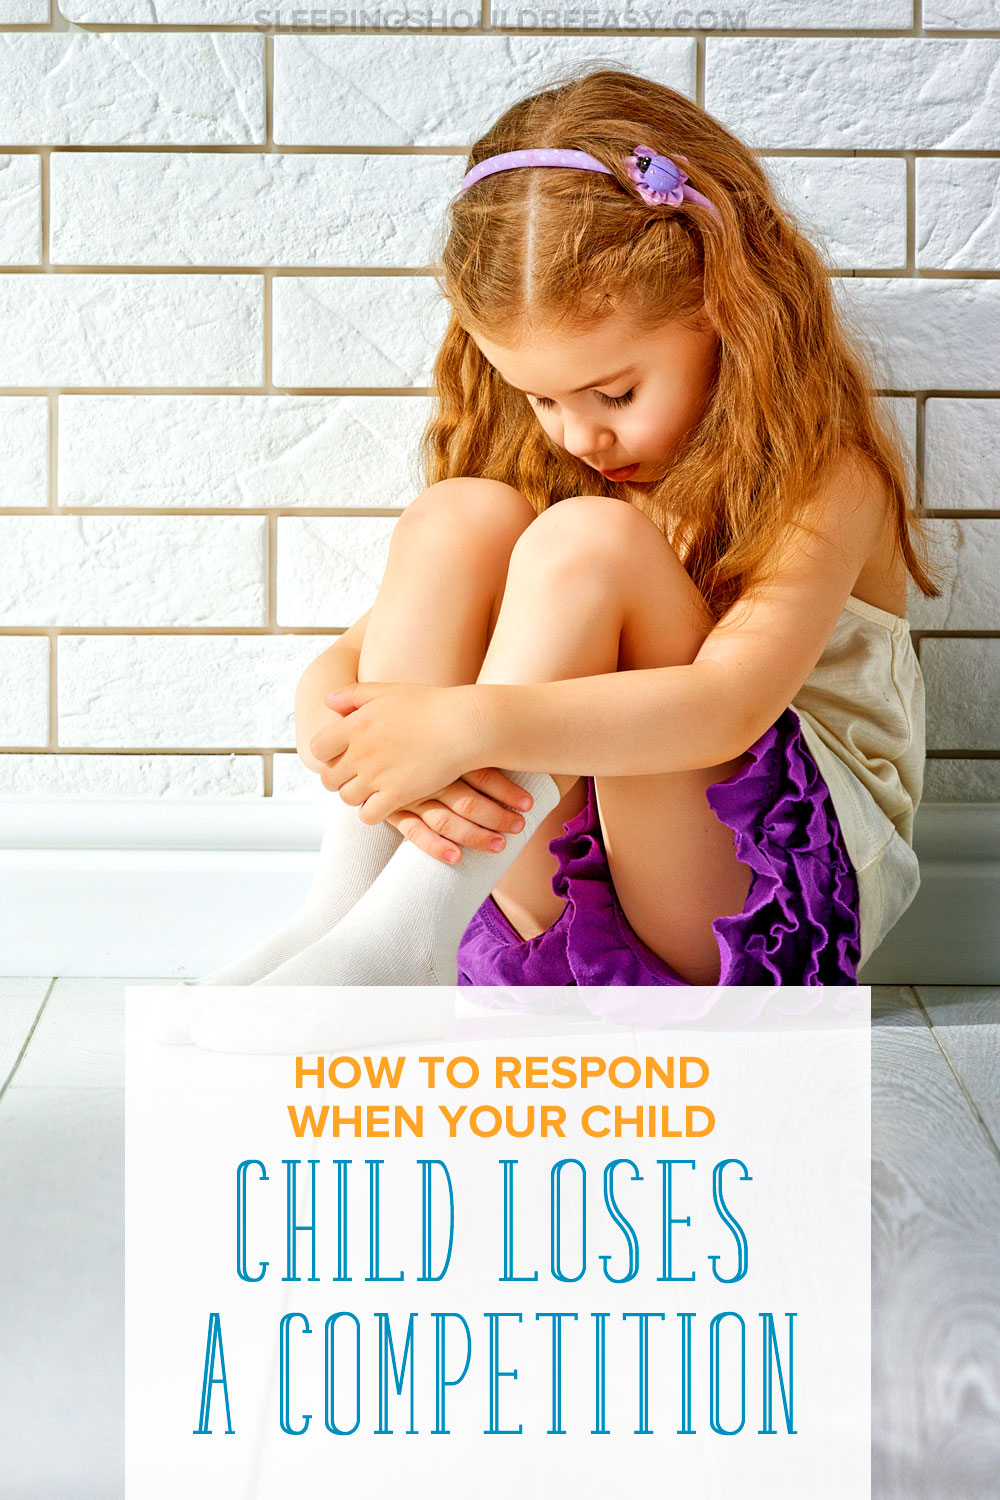 Everyone faces failure—and what we say to our kids is so important. Here's how to respond when your child loses a competition and what to avoid saying. Must-read tips about addressing your child's failures.